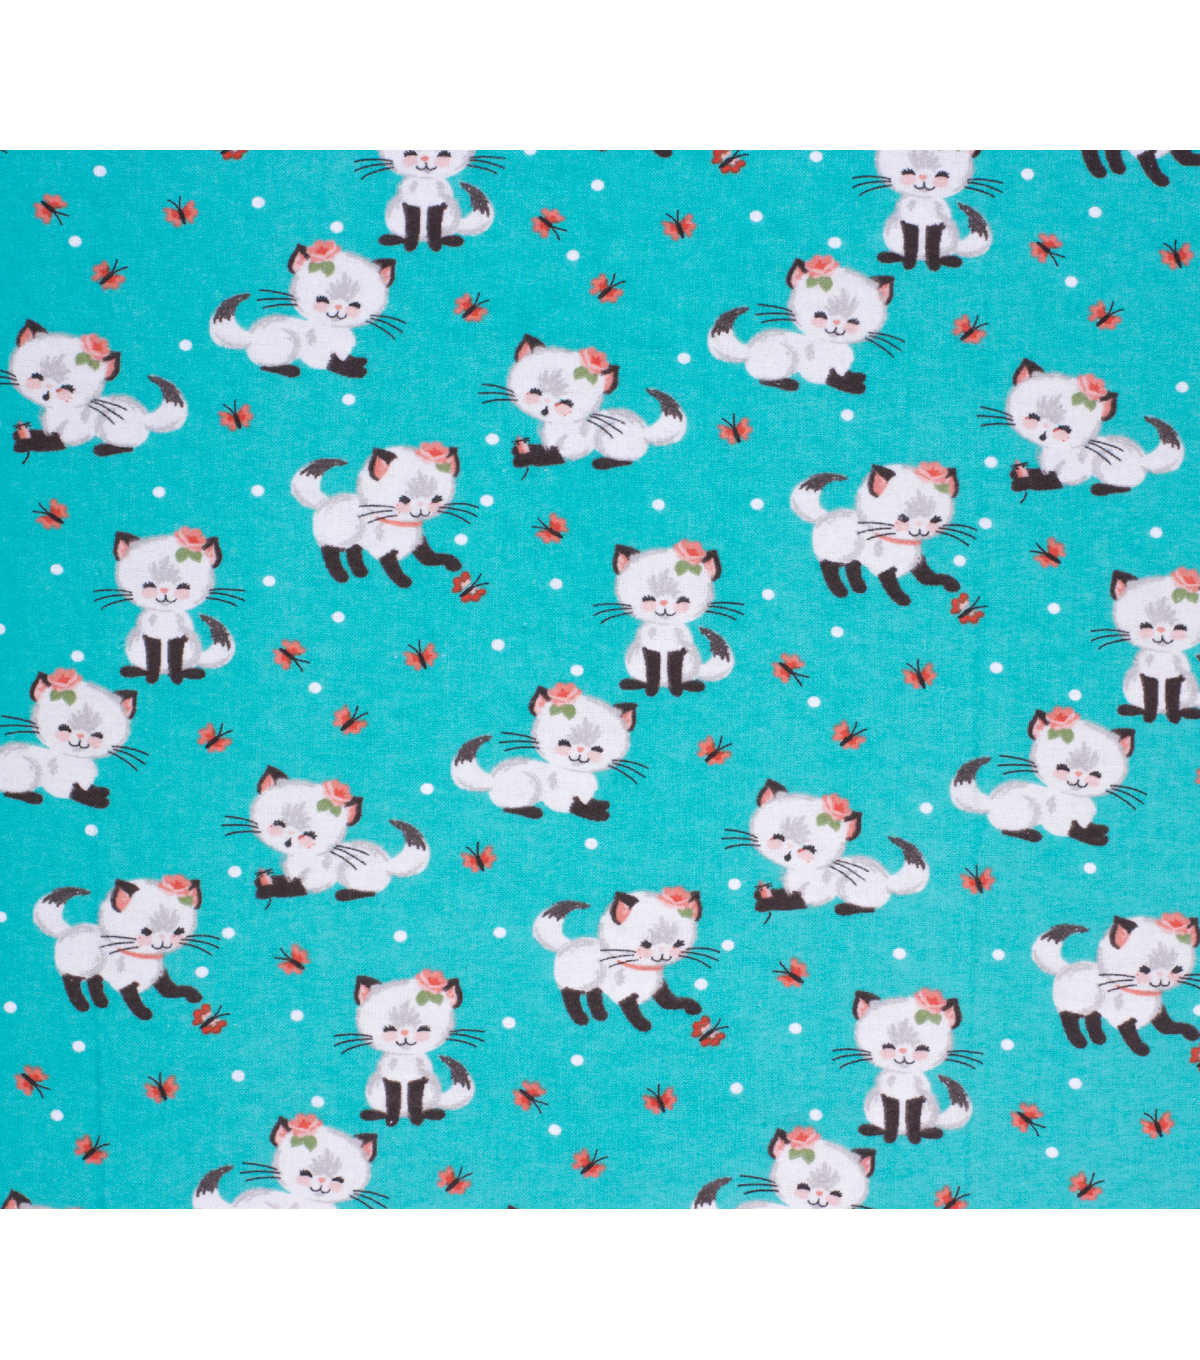 Super Snuggle Flannel Fabric-Pretty Kitty Plays